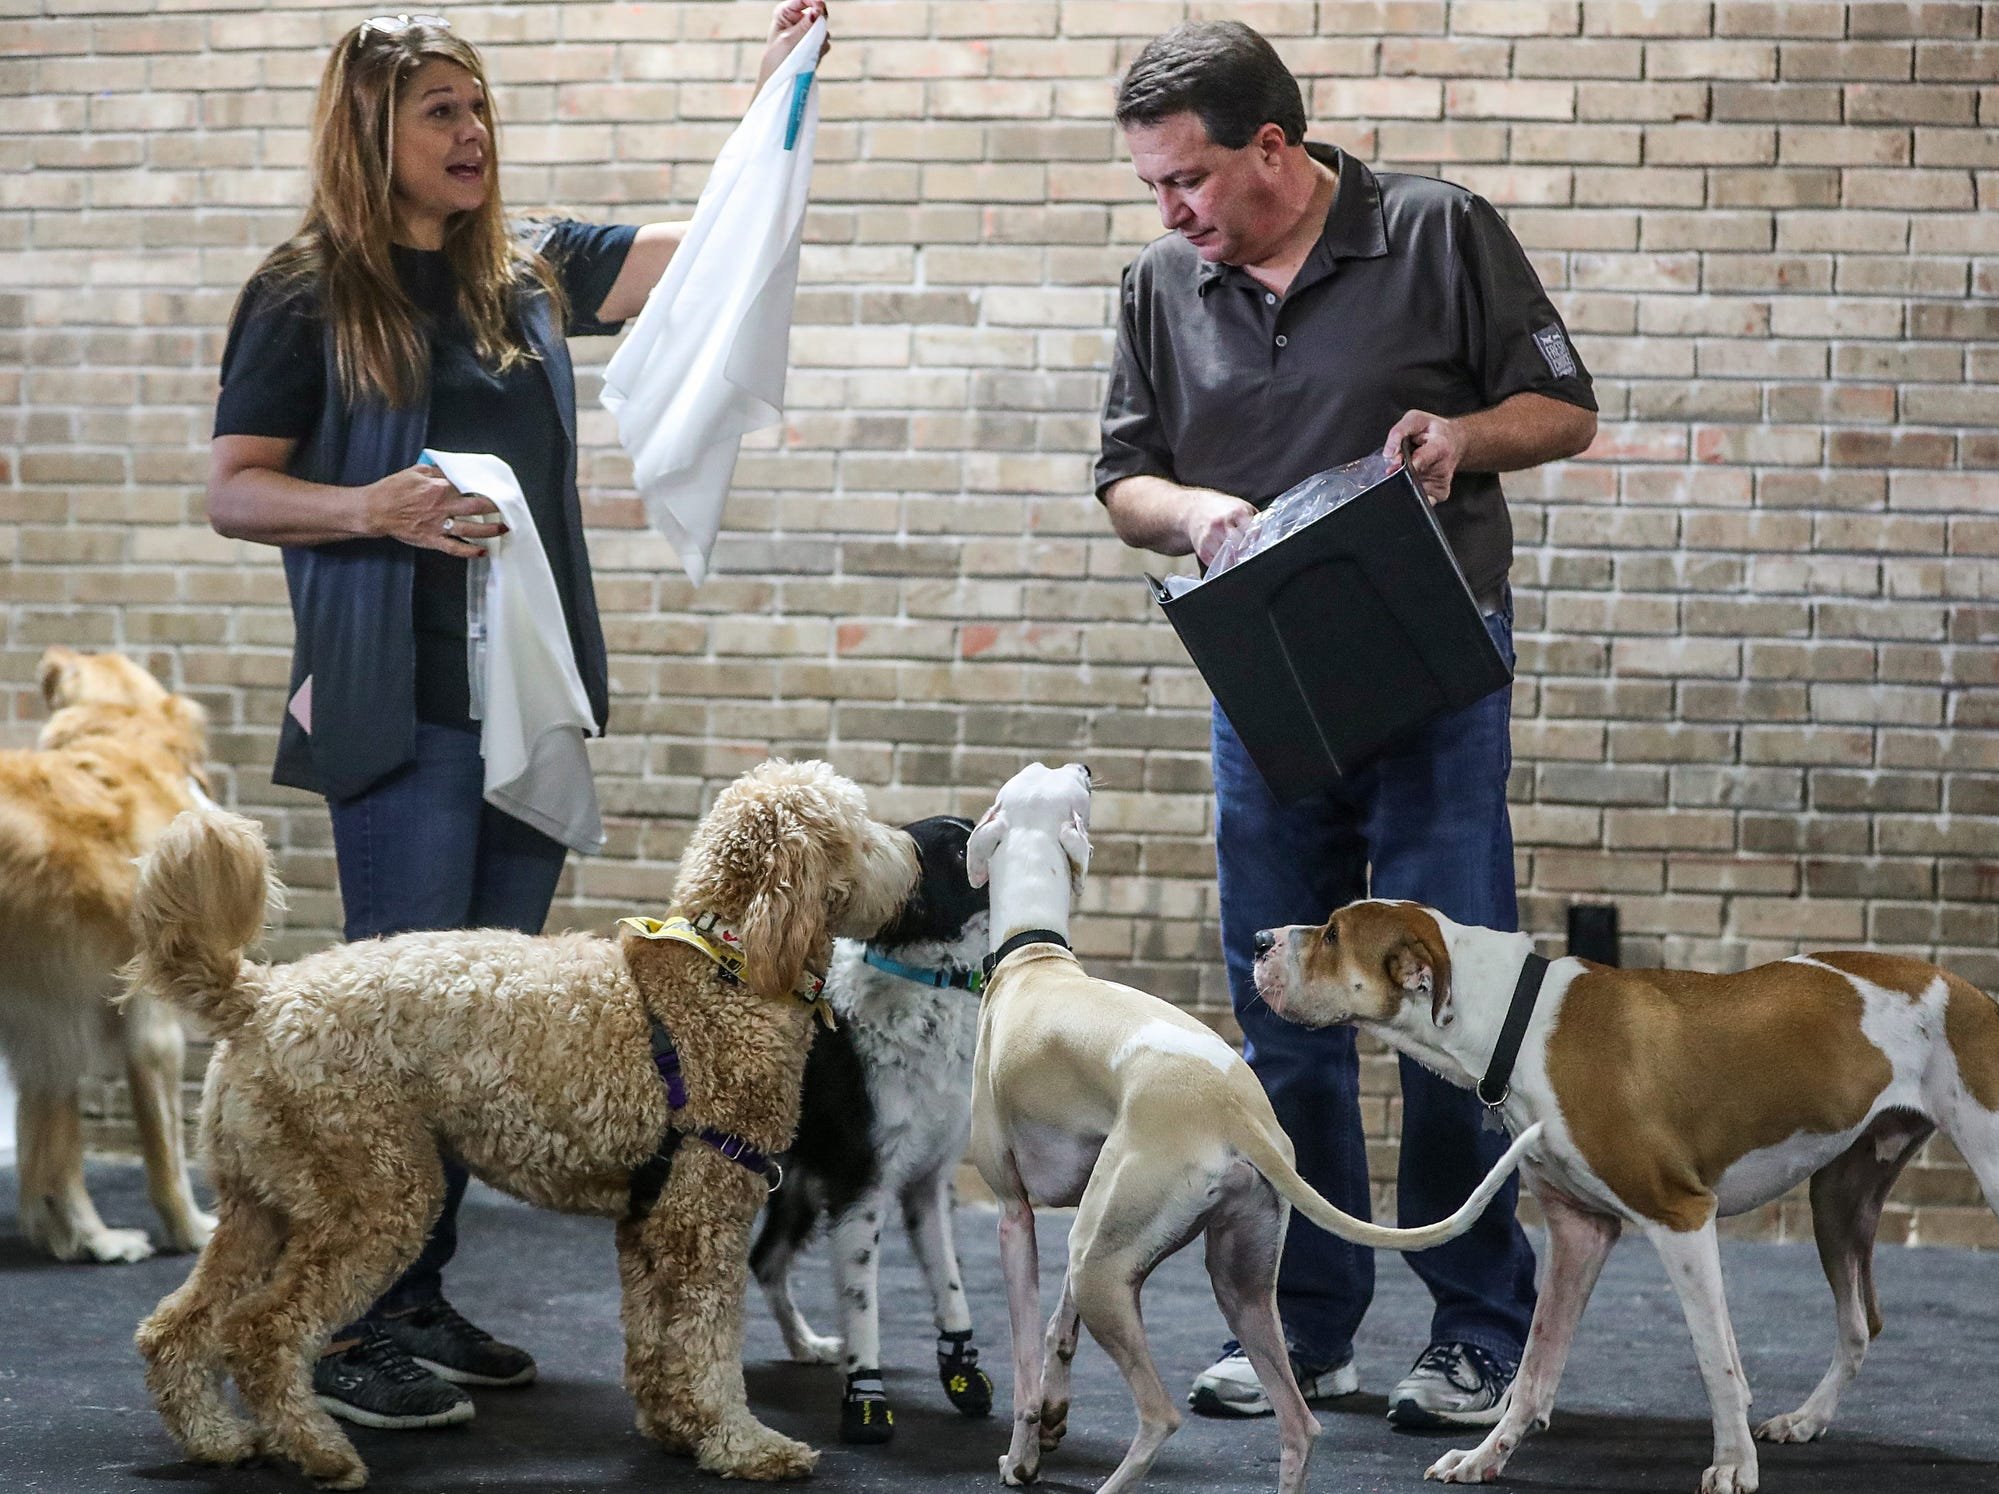 From left, Tracy Pflum hands out bandanas and Steve Cline hands out treats during the grand opening of Indy's Indoor Bark Park in Indianapolis, Saturday, Jan, 5, 2019. The large indoor space offers owners a place to exercise their dogs regardless of the weather. Membership options include single-day, multi-day and annual passes.